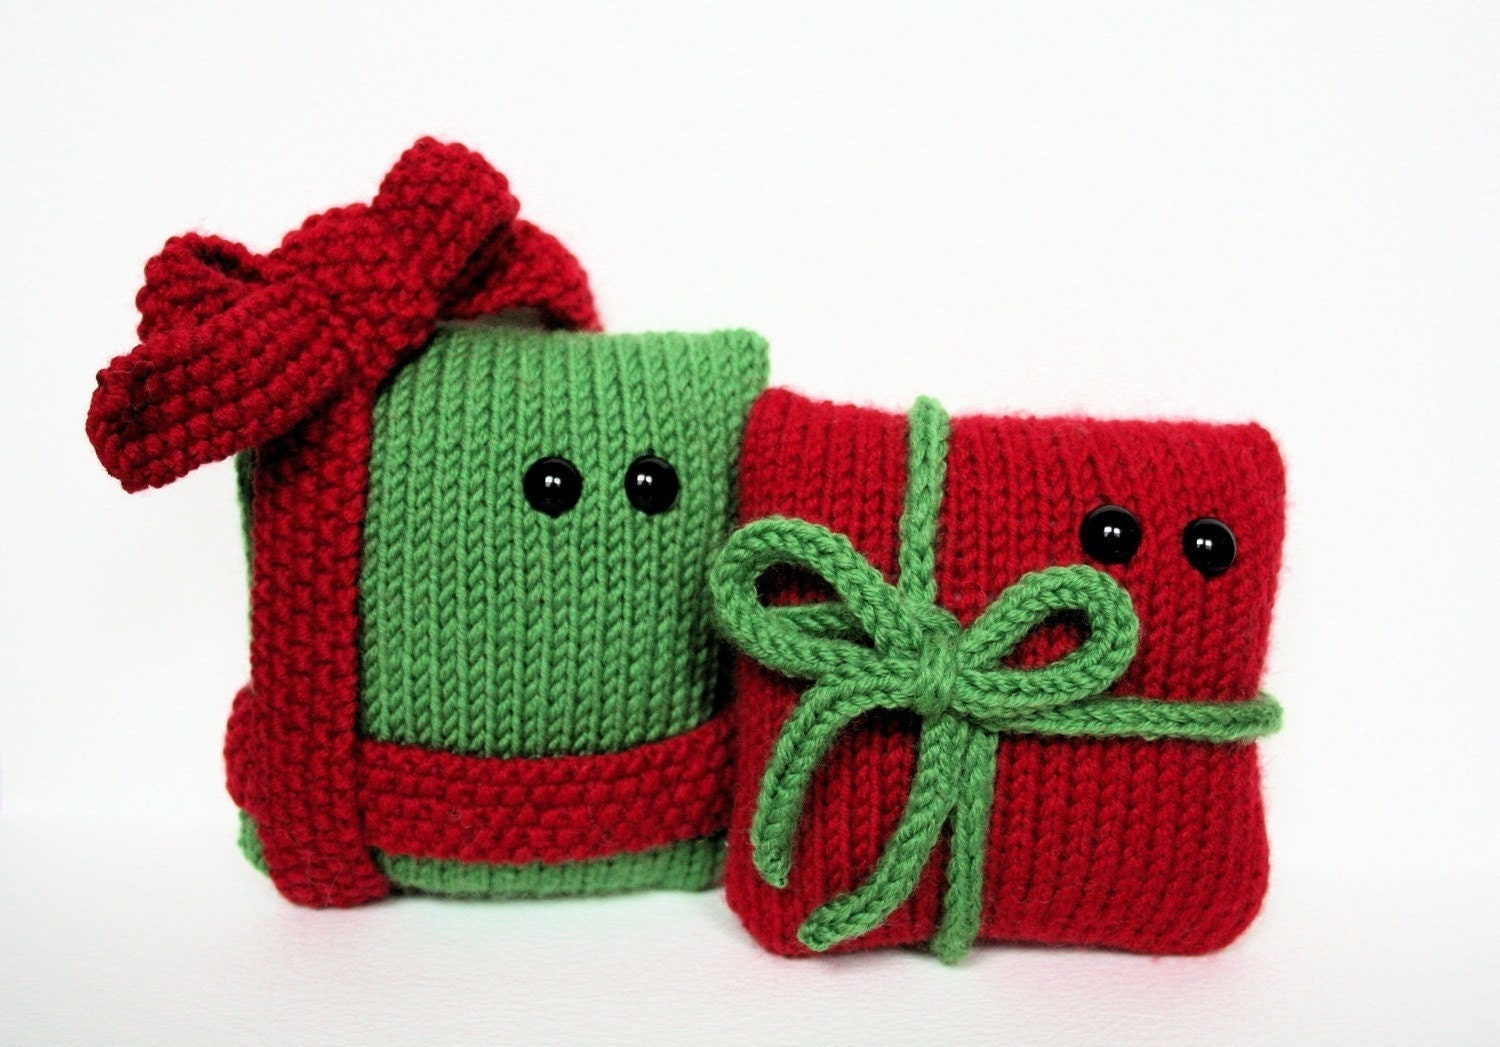 Knitted Sweater Patterns Free : Knit your own amigurumi Christmas presents pdf by ButterflyLove1